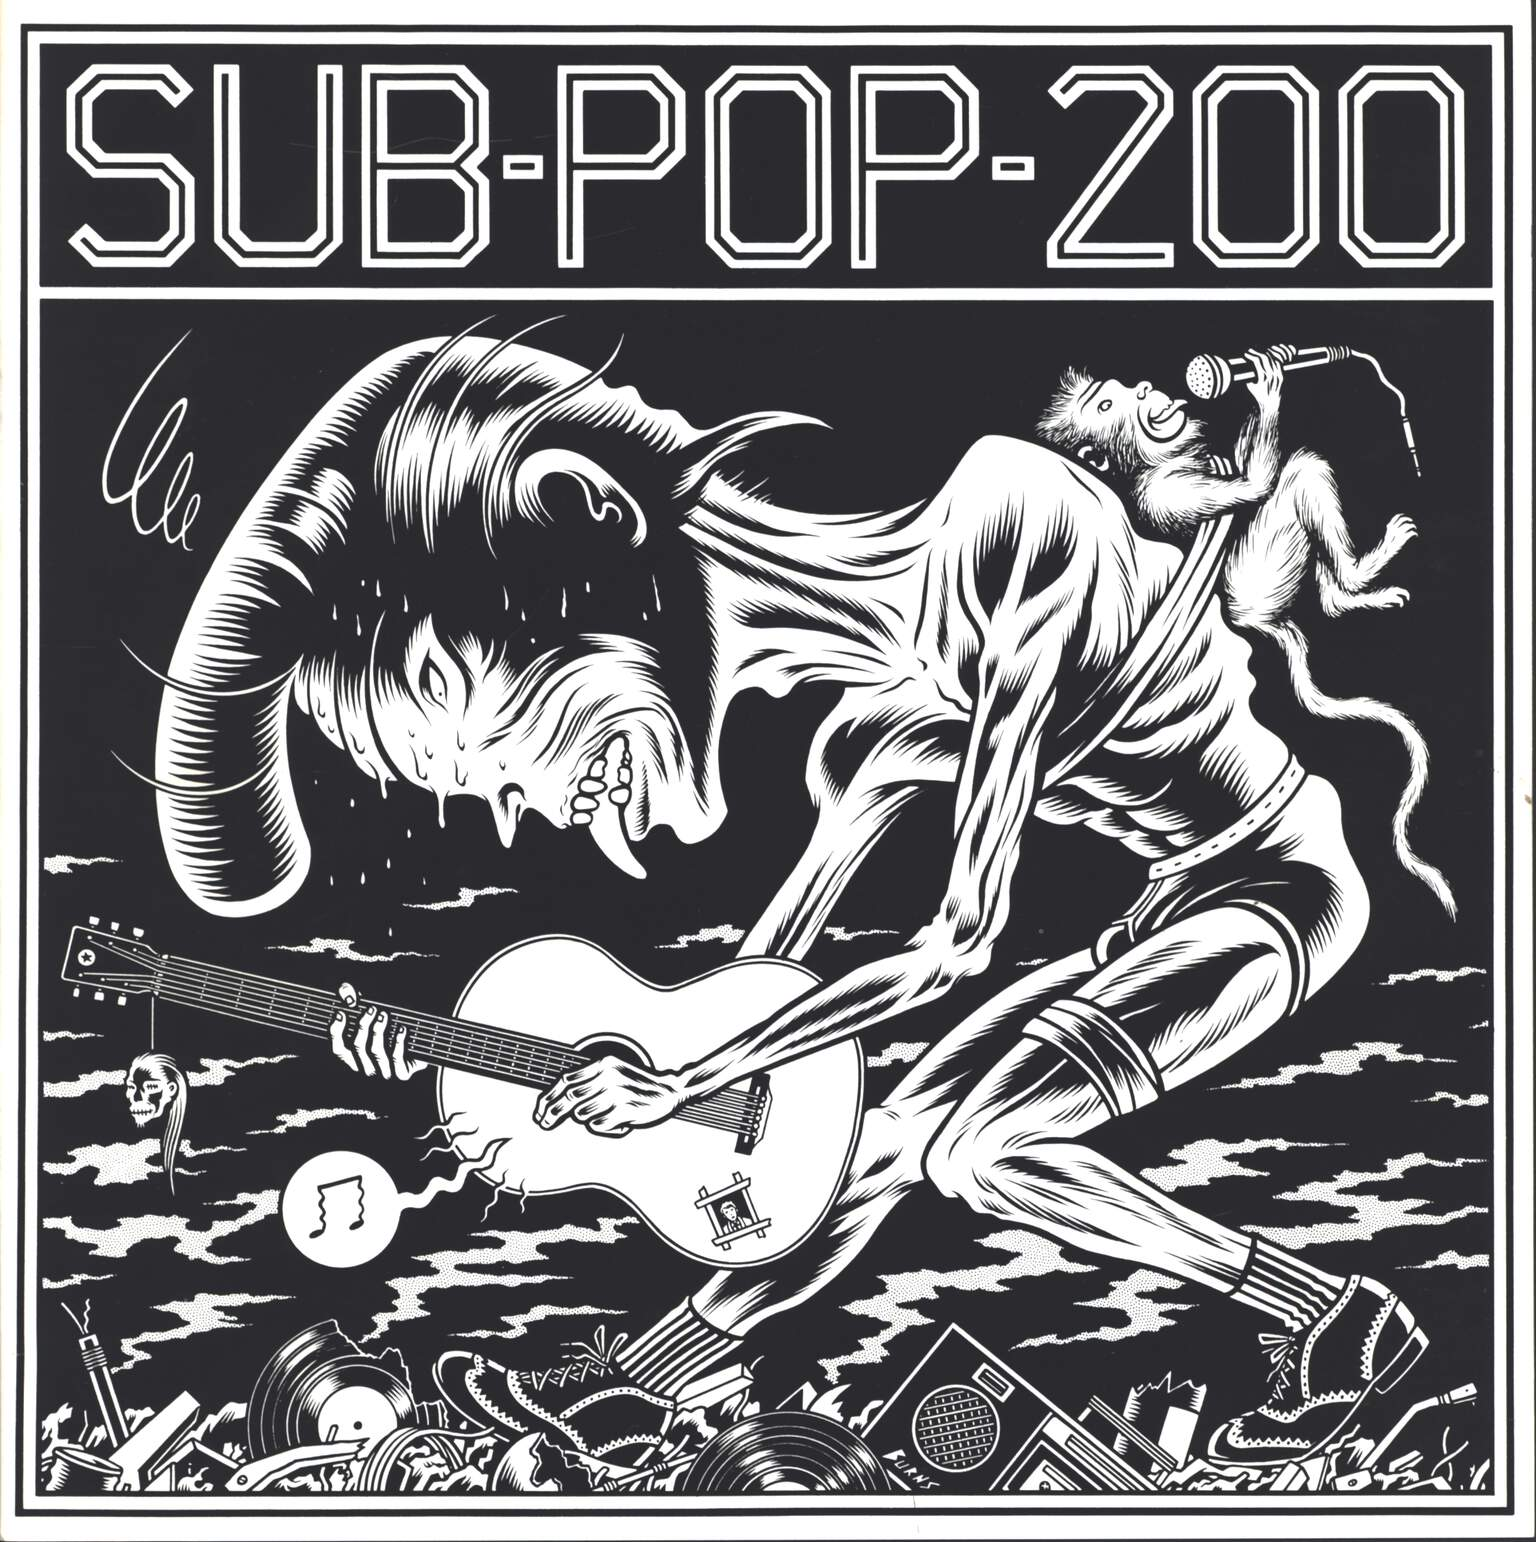 Various: Sub Pop 200, LP (Vinyl)